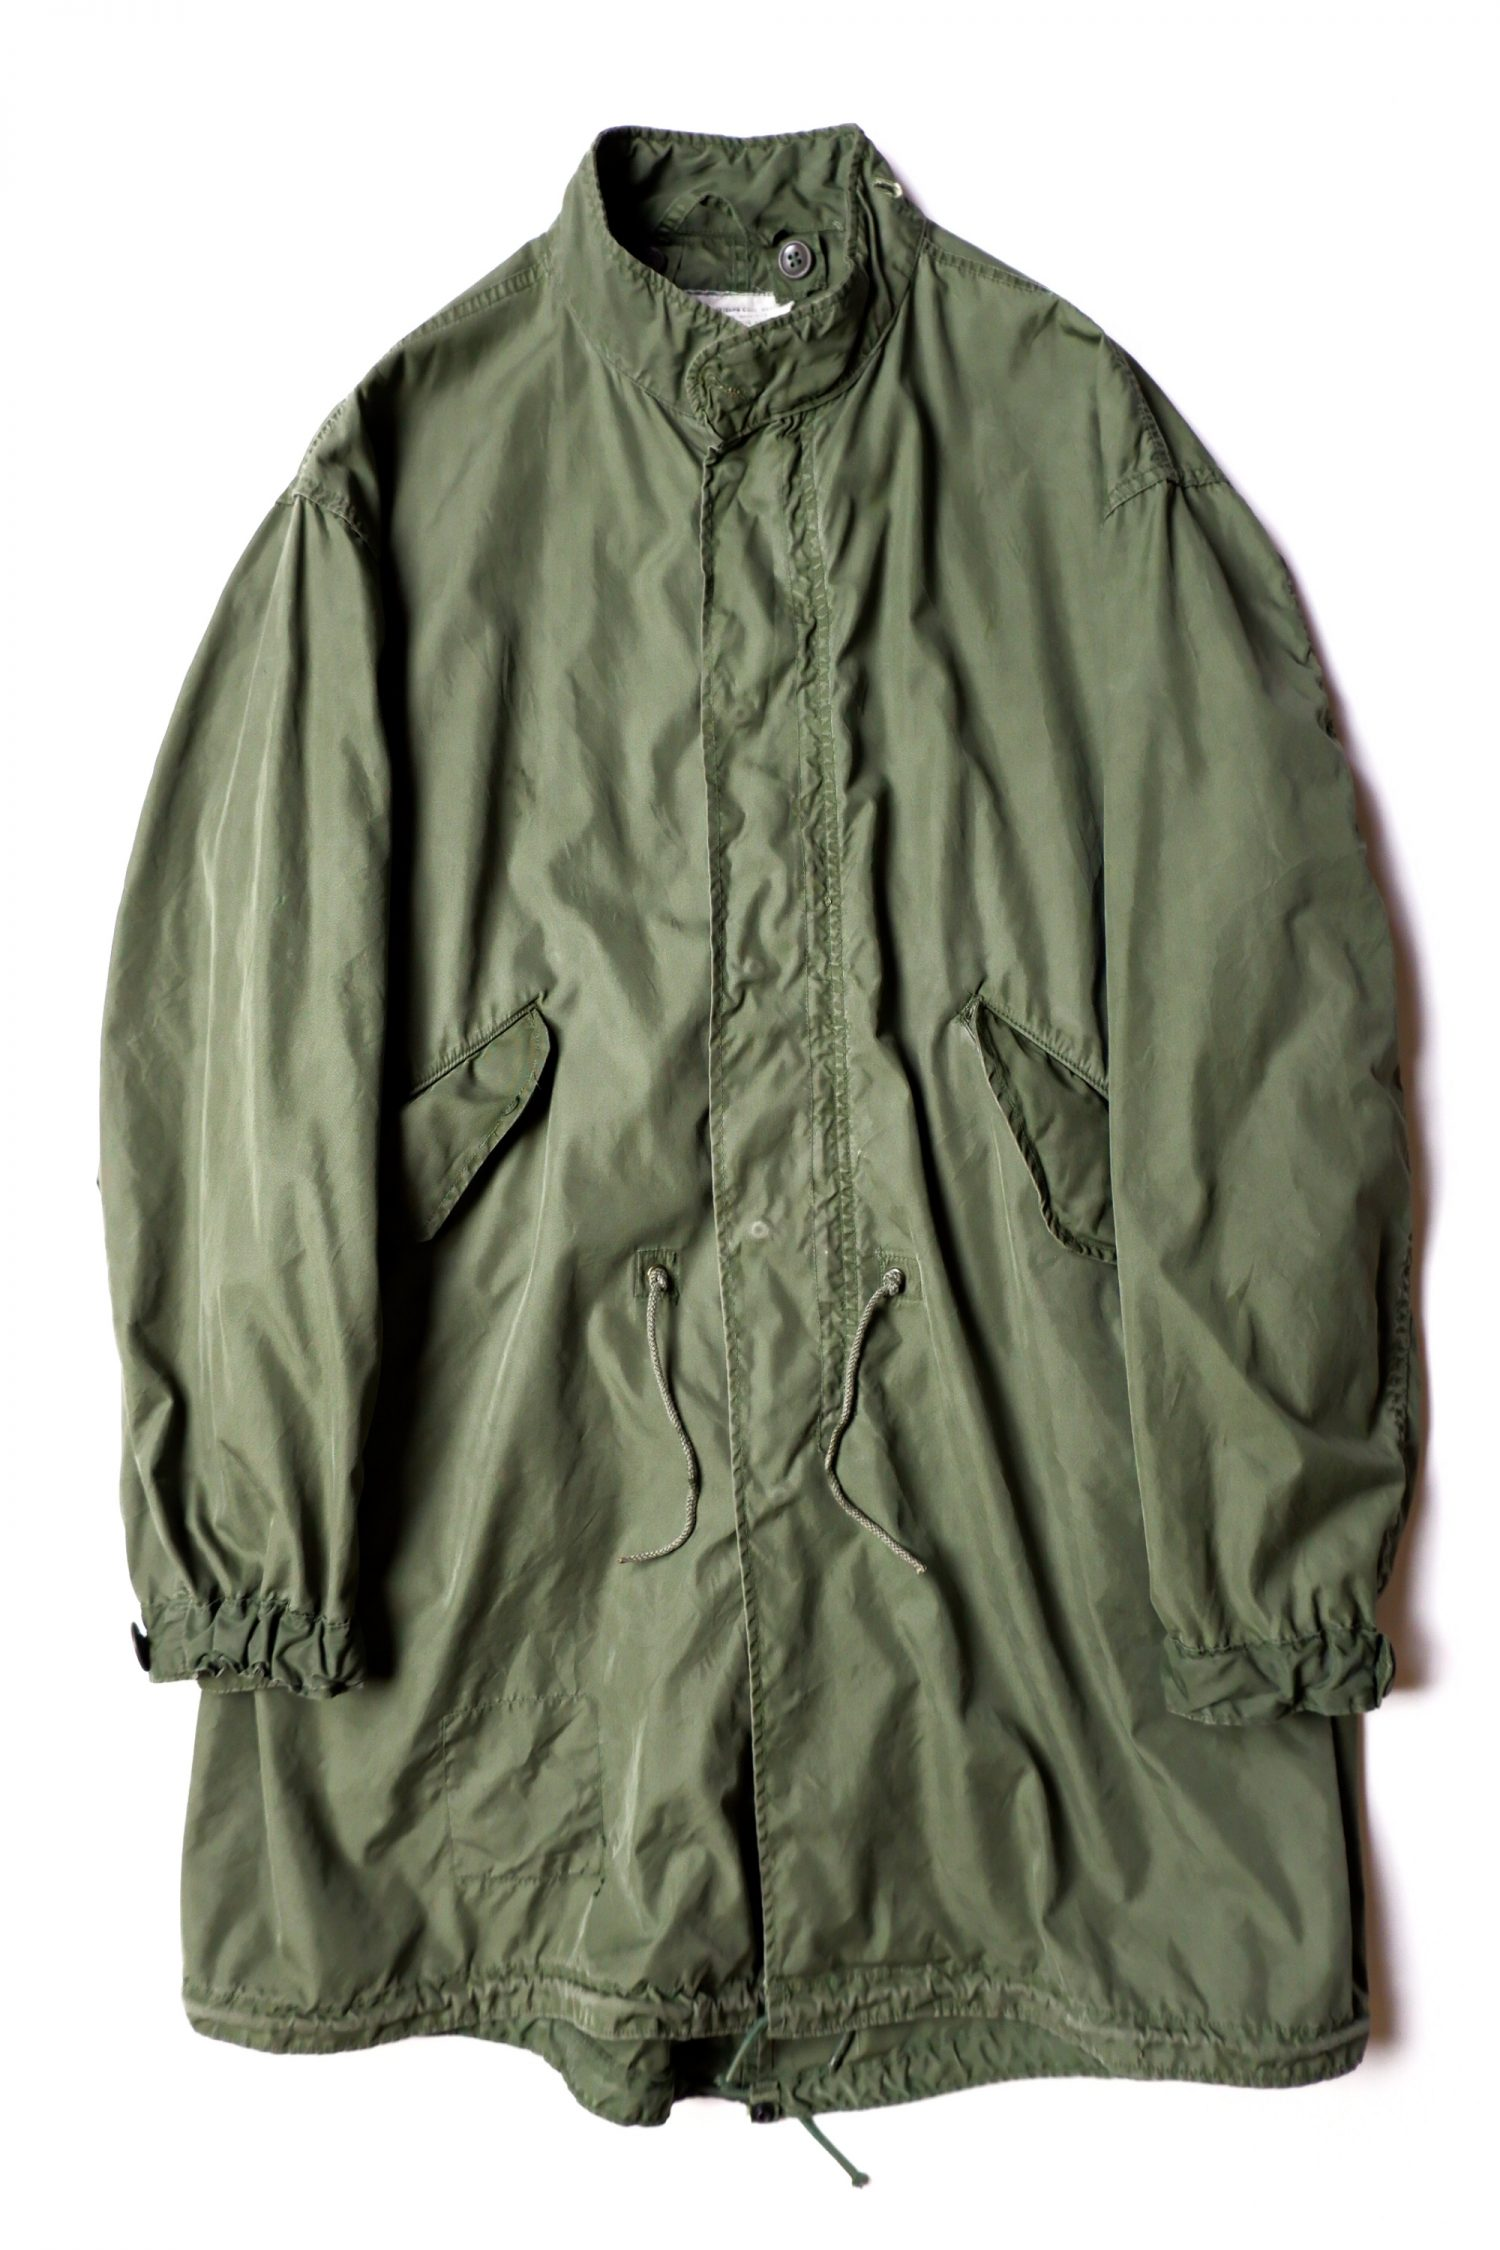 M-65 Fish-Tail Parka